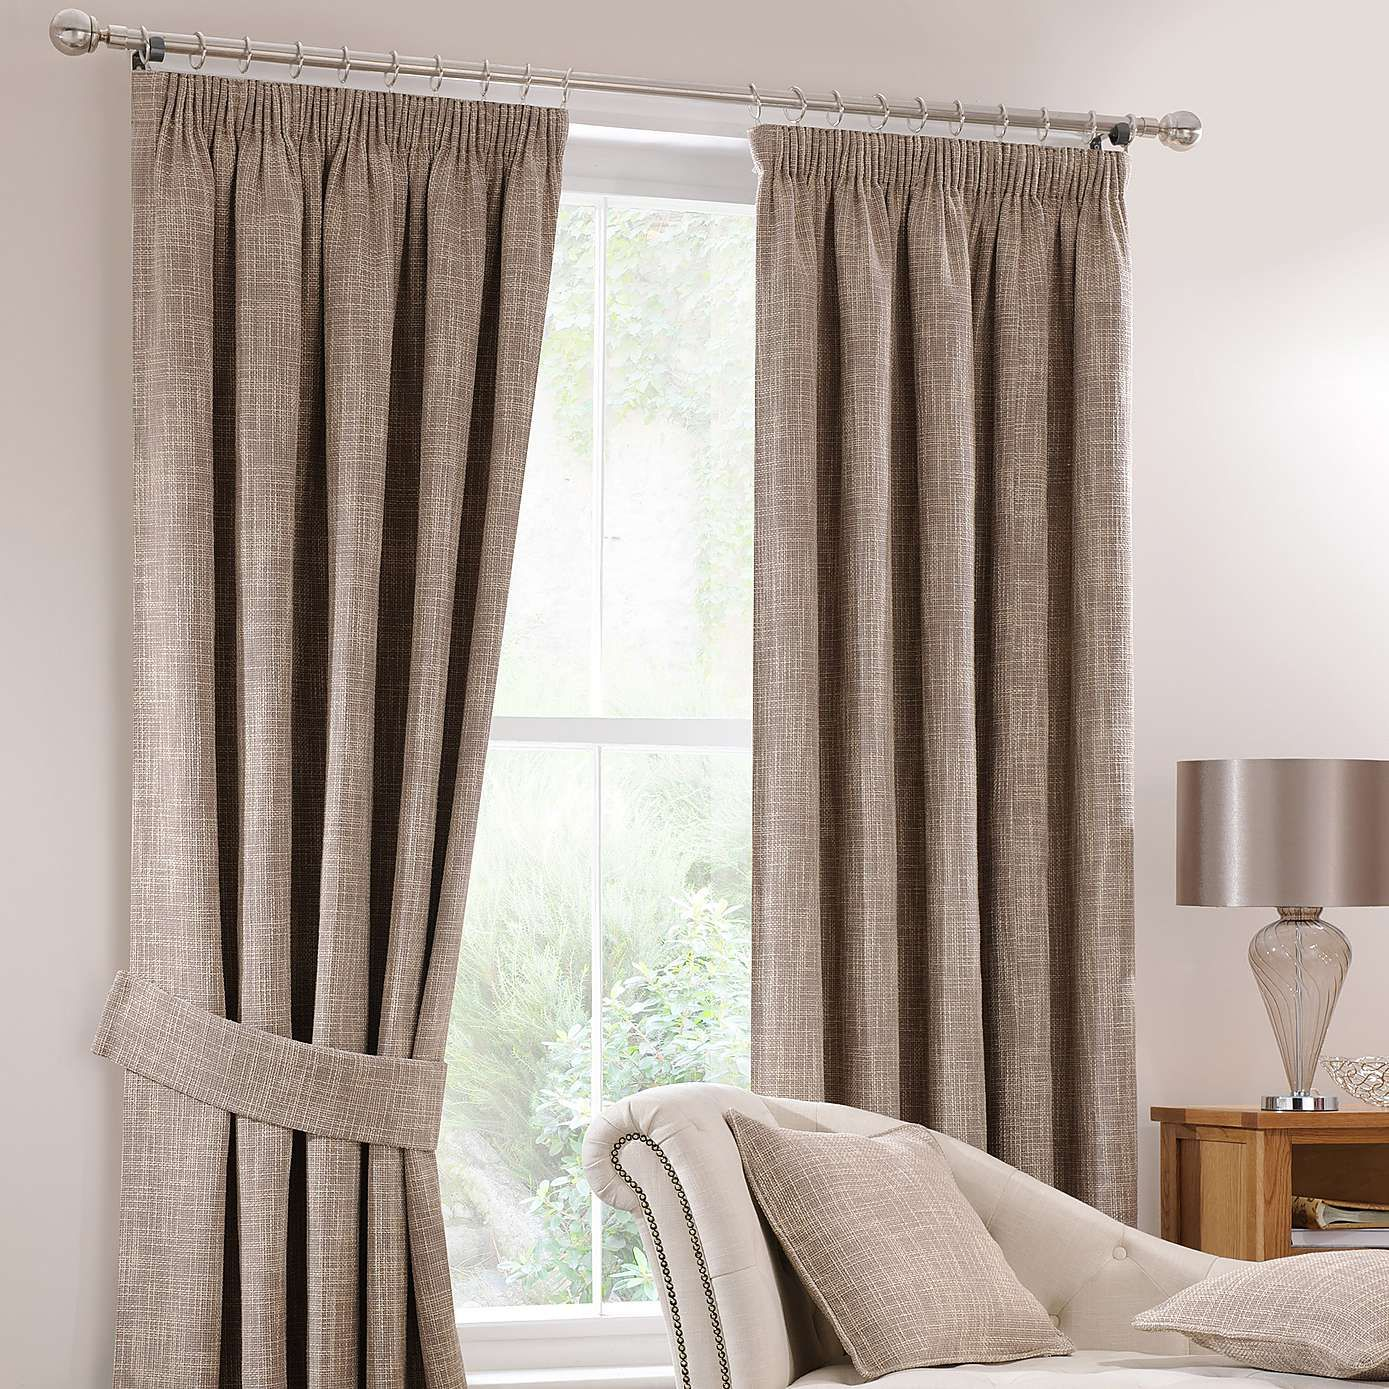 Dunelm Home: Lorenza Mink Lined Pencil Pleat Curtains